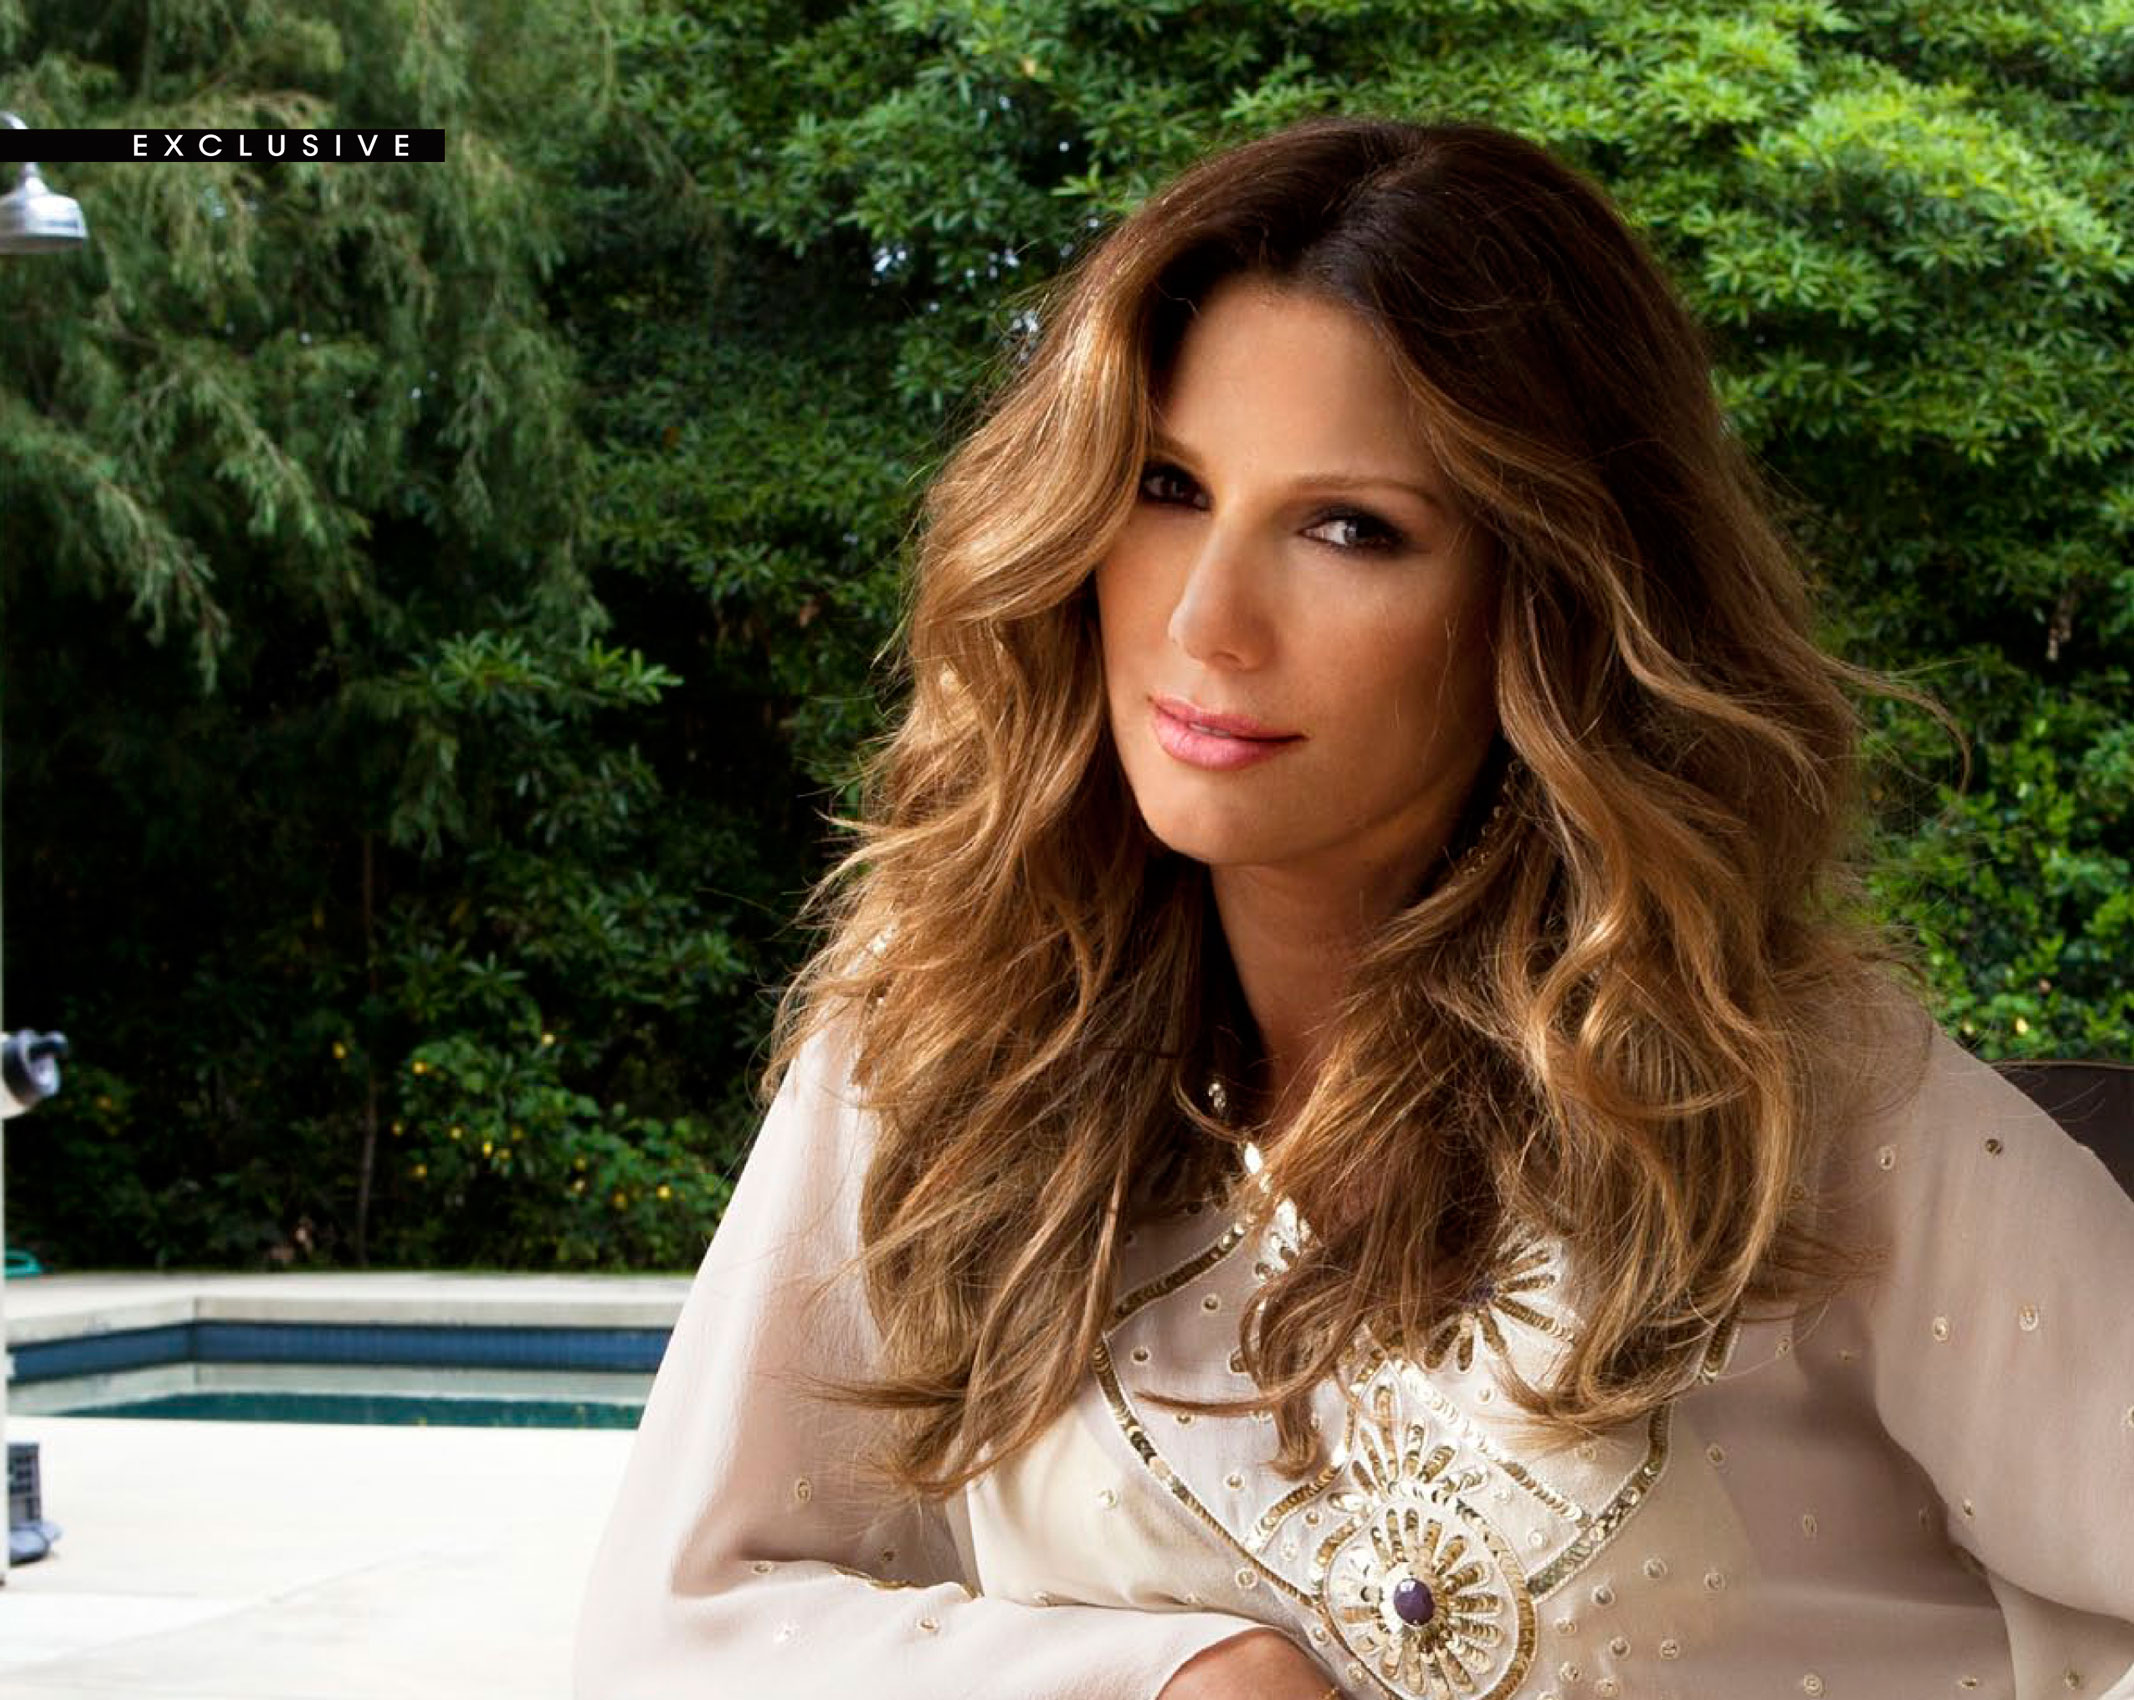 daisy fuentes completely nude